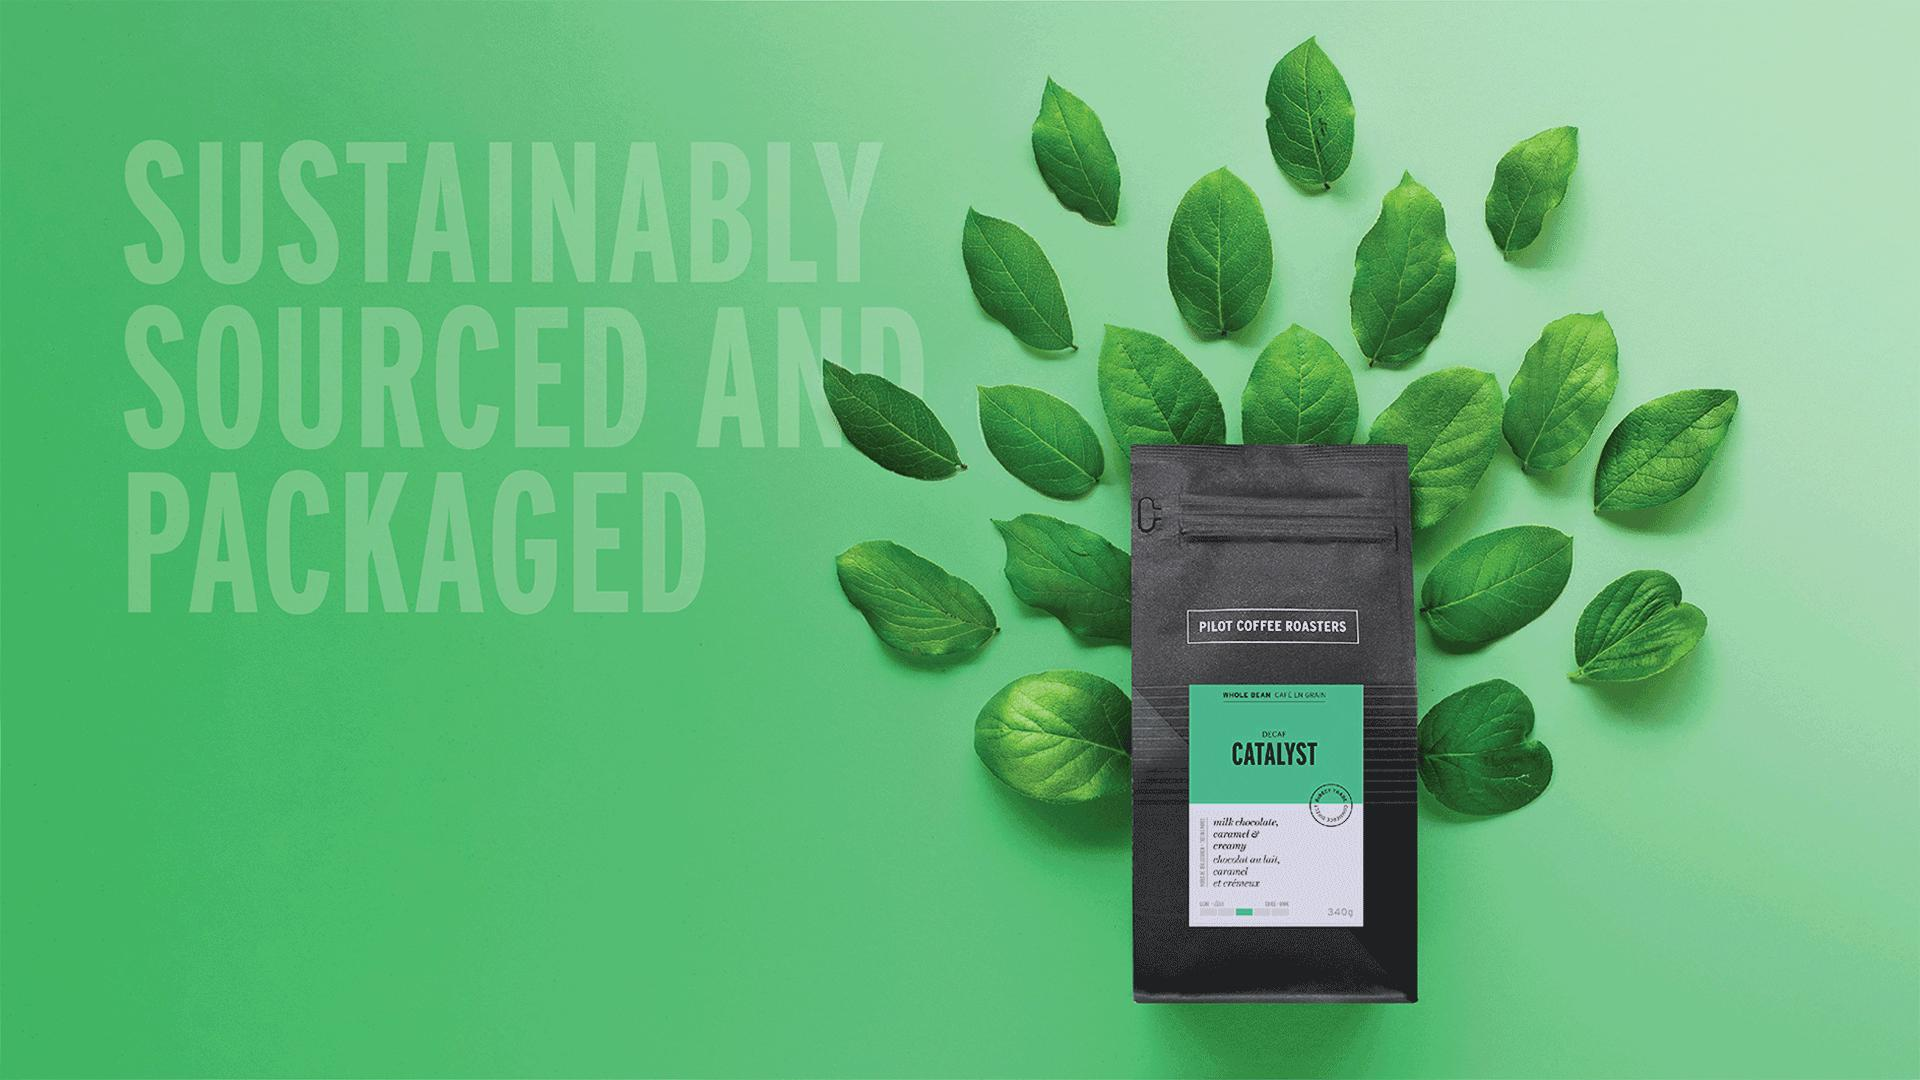 Win a six month Pilot Coffee subscription | Sustainably sourced and packaged